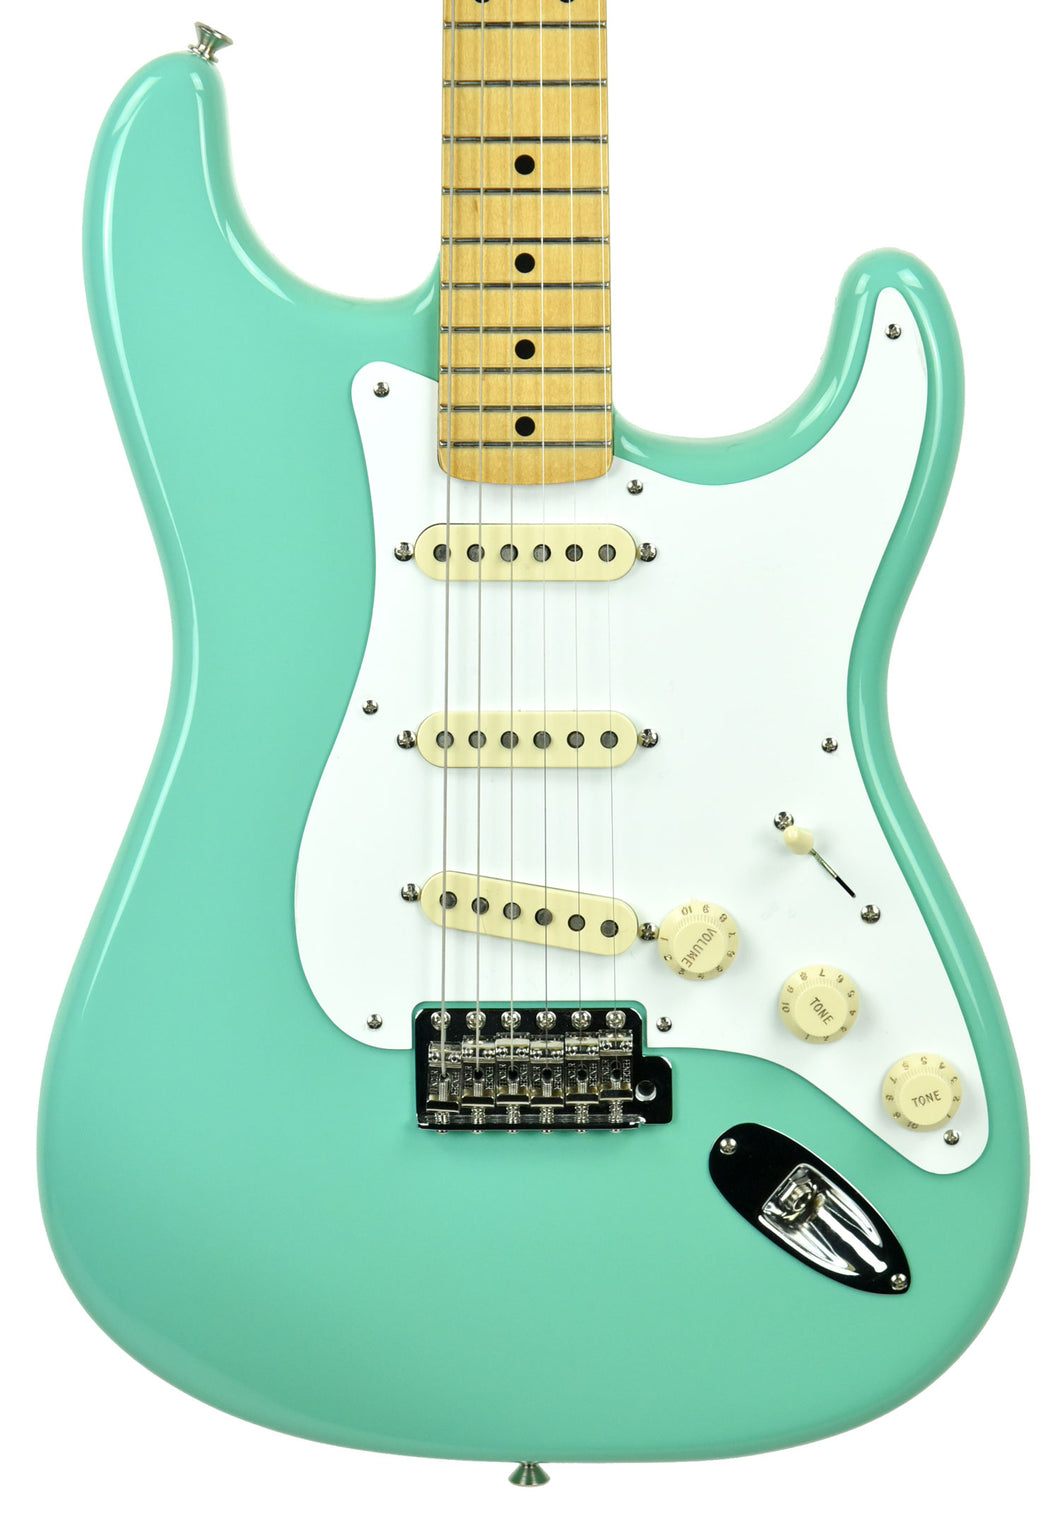 Fender Vintera 50s Stratocaster in Seafoam Green MX19089034 - The Music Gallery